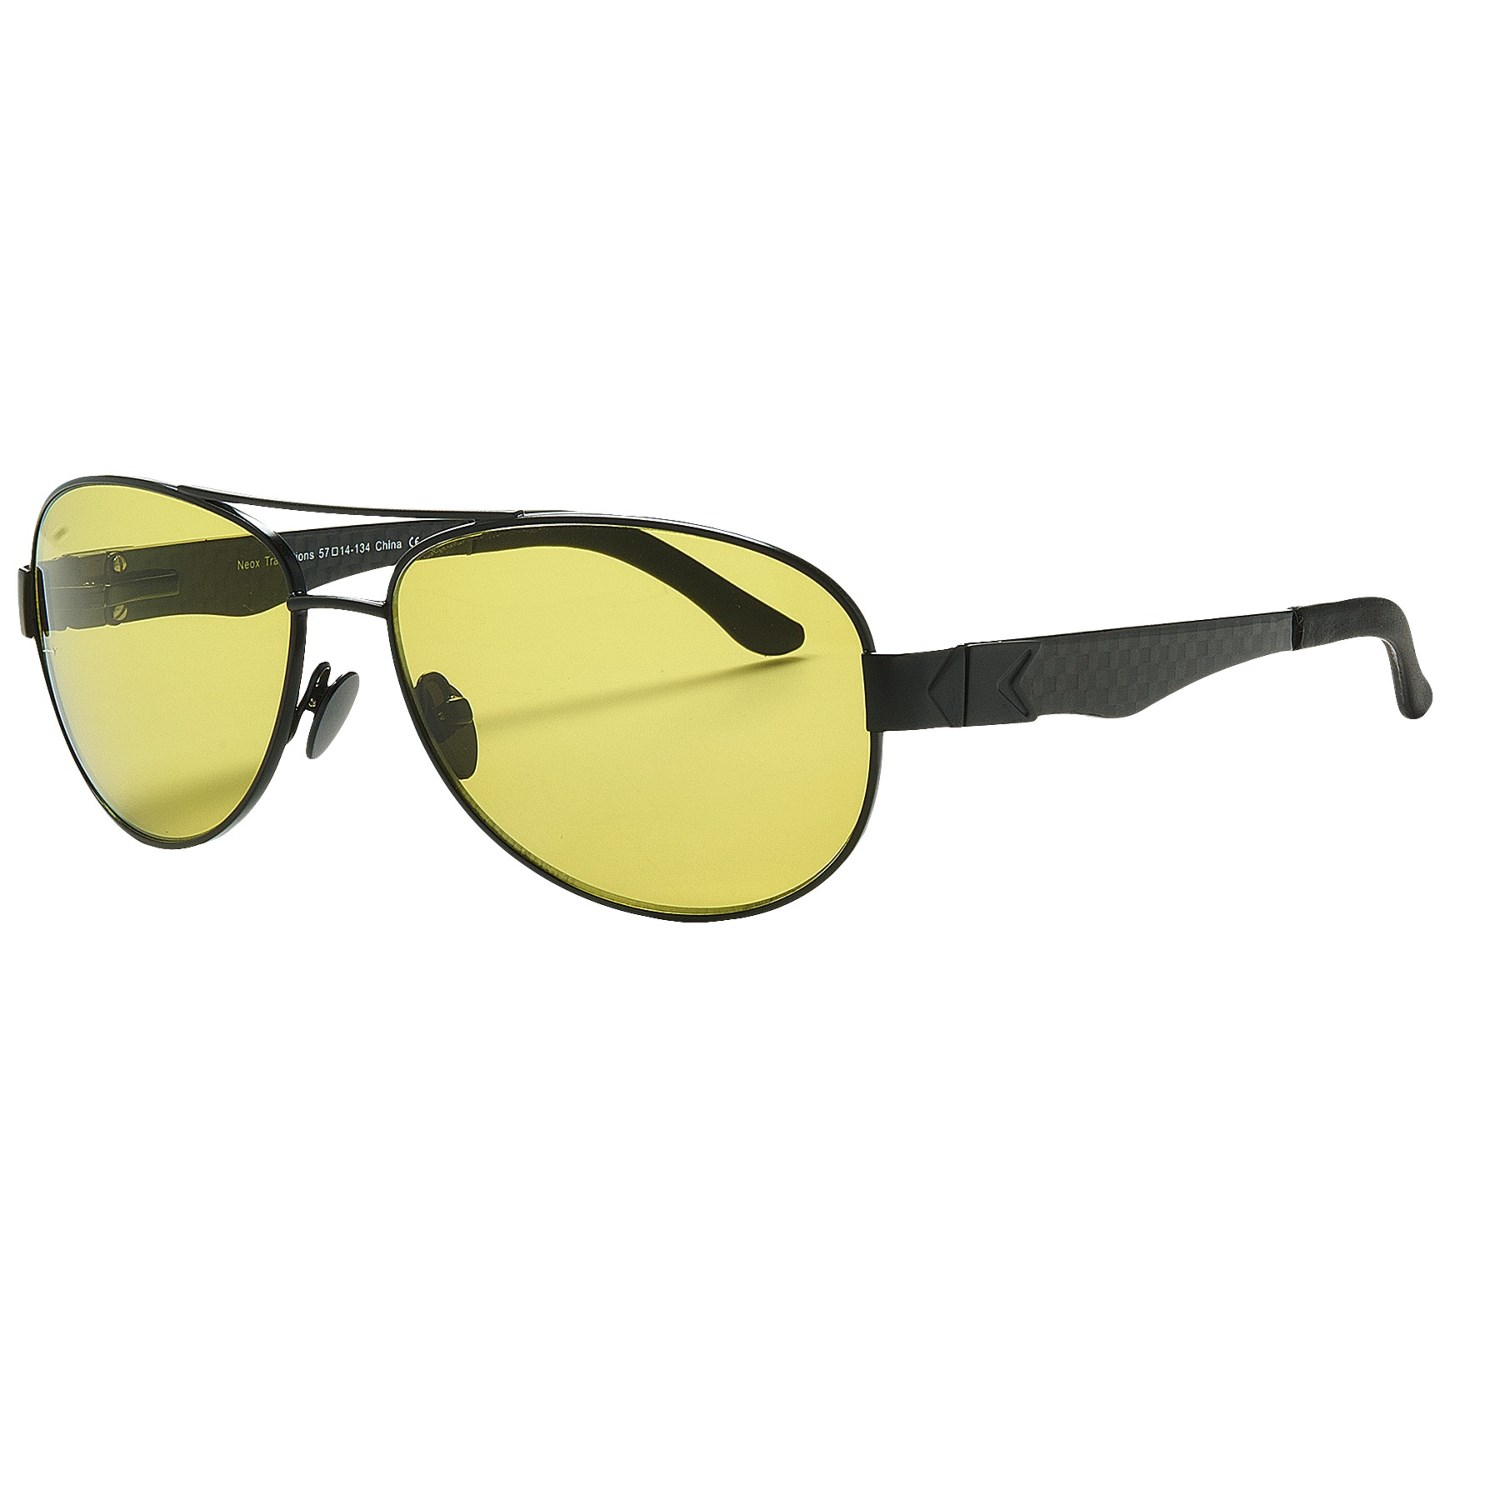 Callaway Sunglasses Lookup Beforebuying